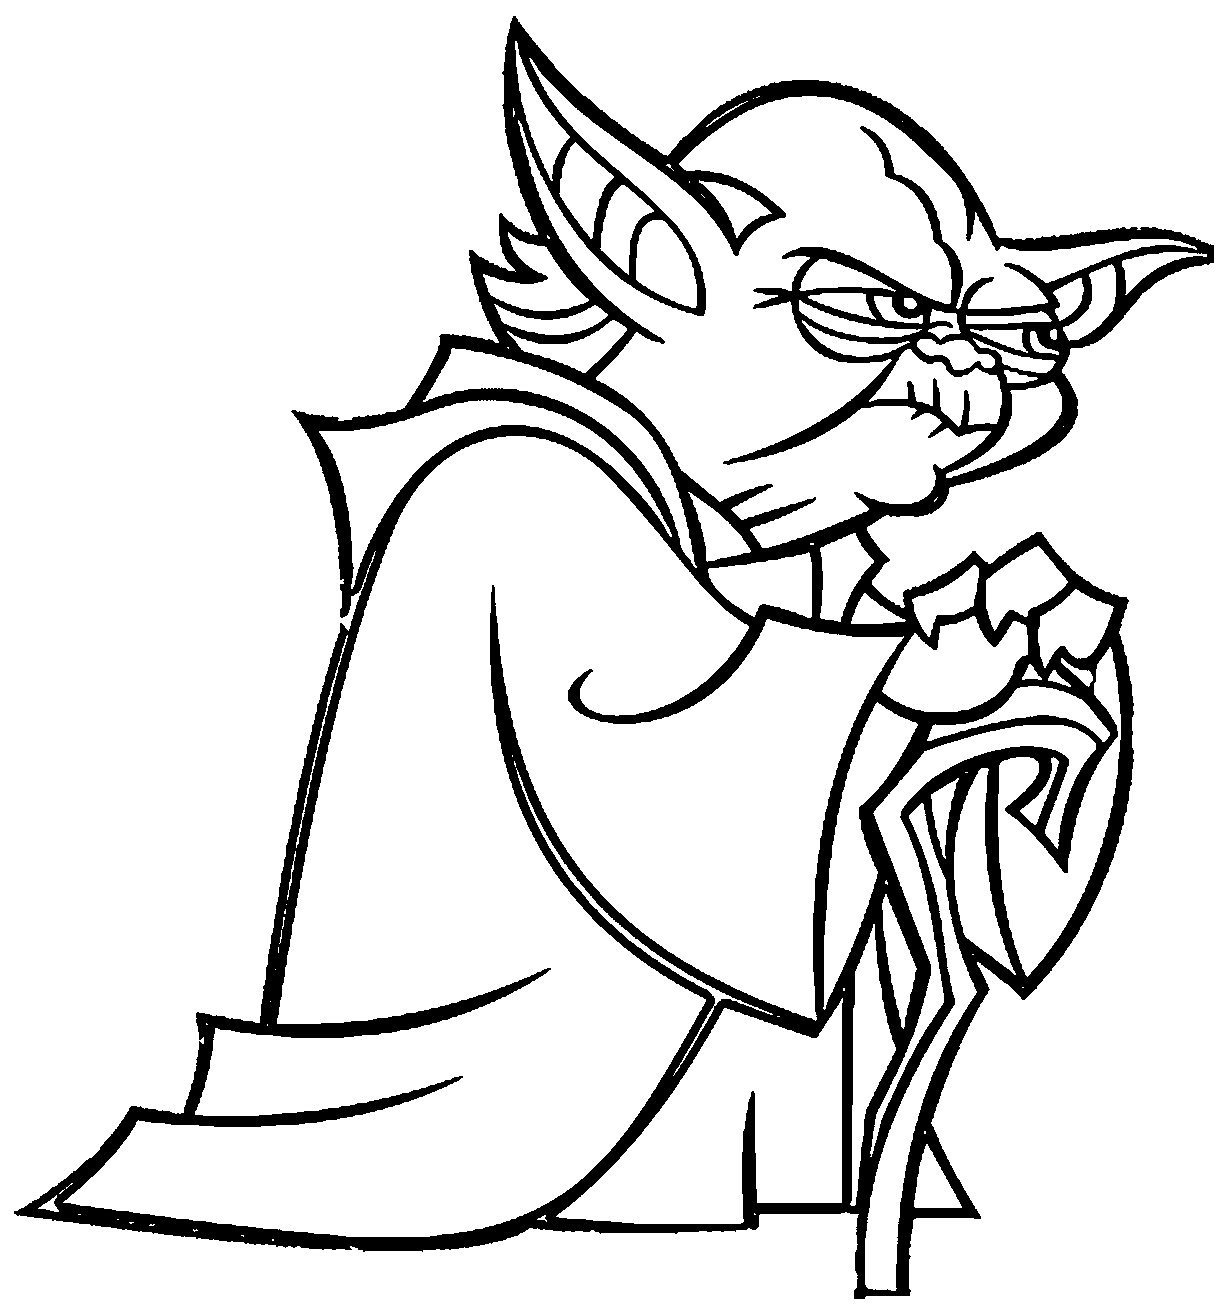 coloring pages star wars star wars characters coloring pages gallery free coloring star wars pages